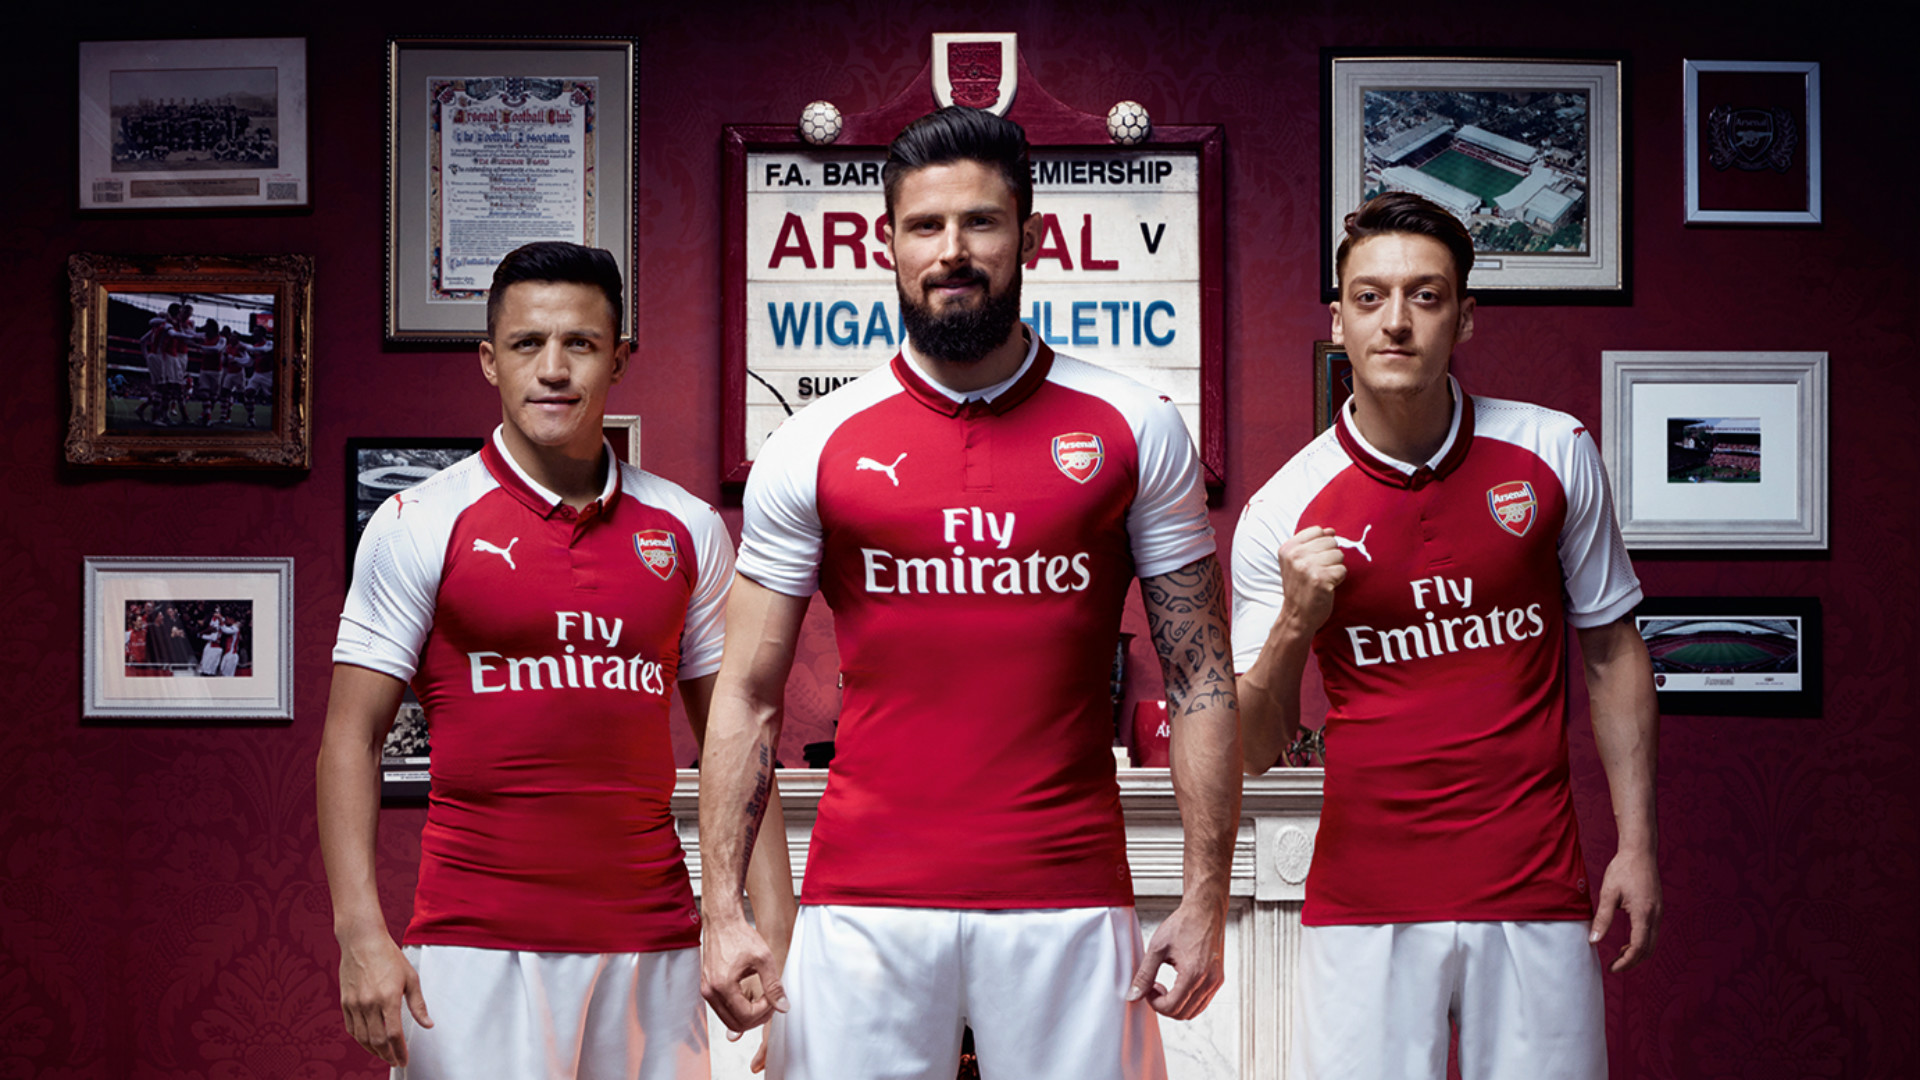 Arsenal Home Kit 2017-18